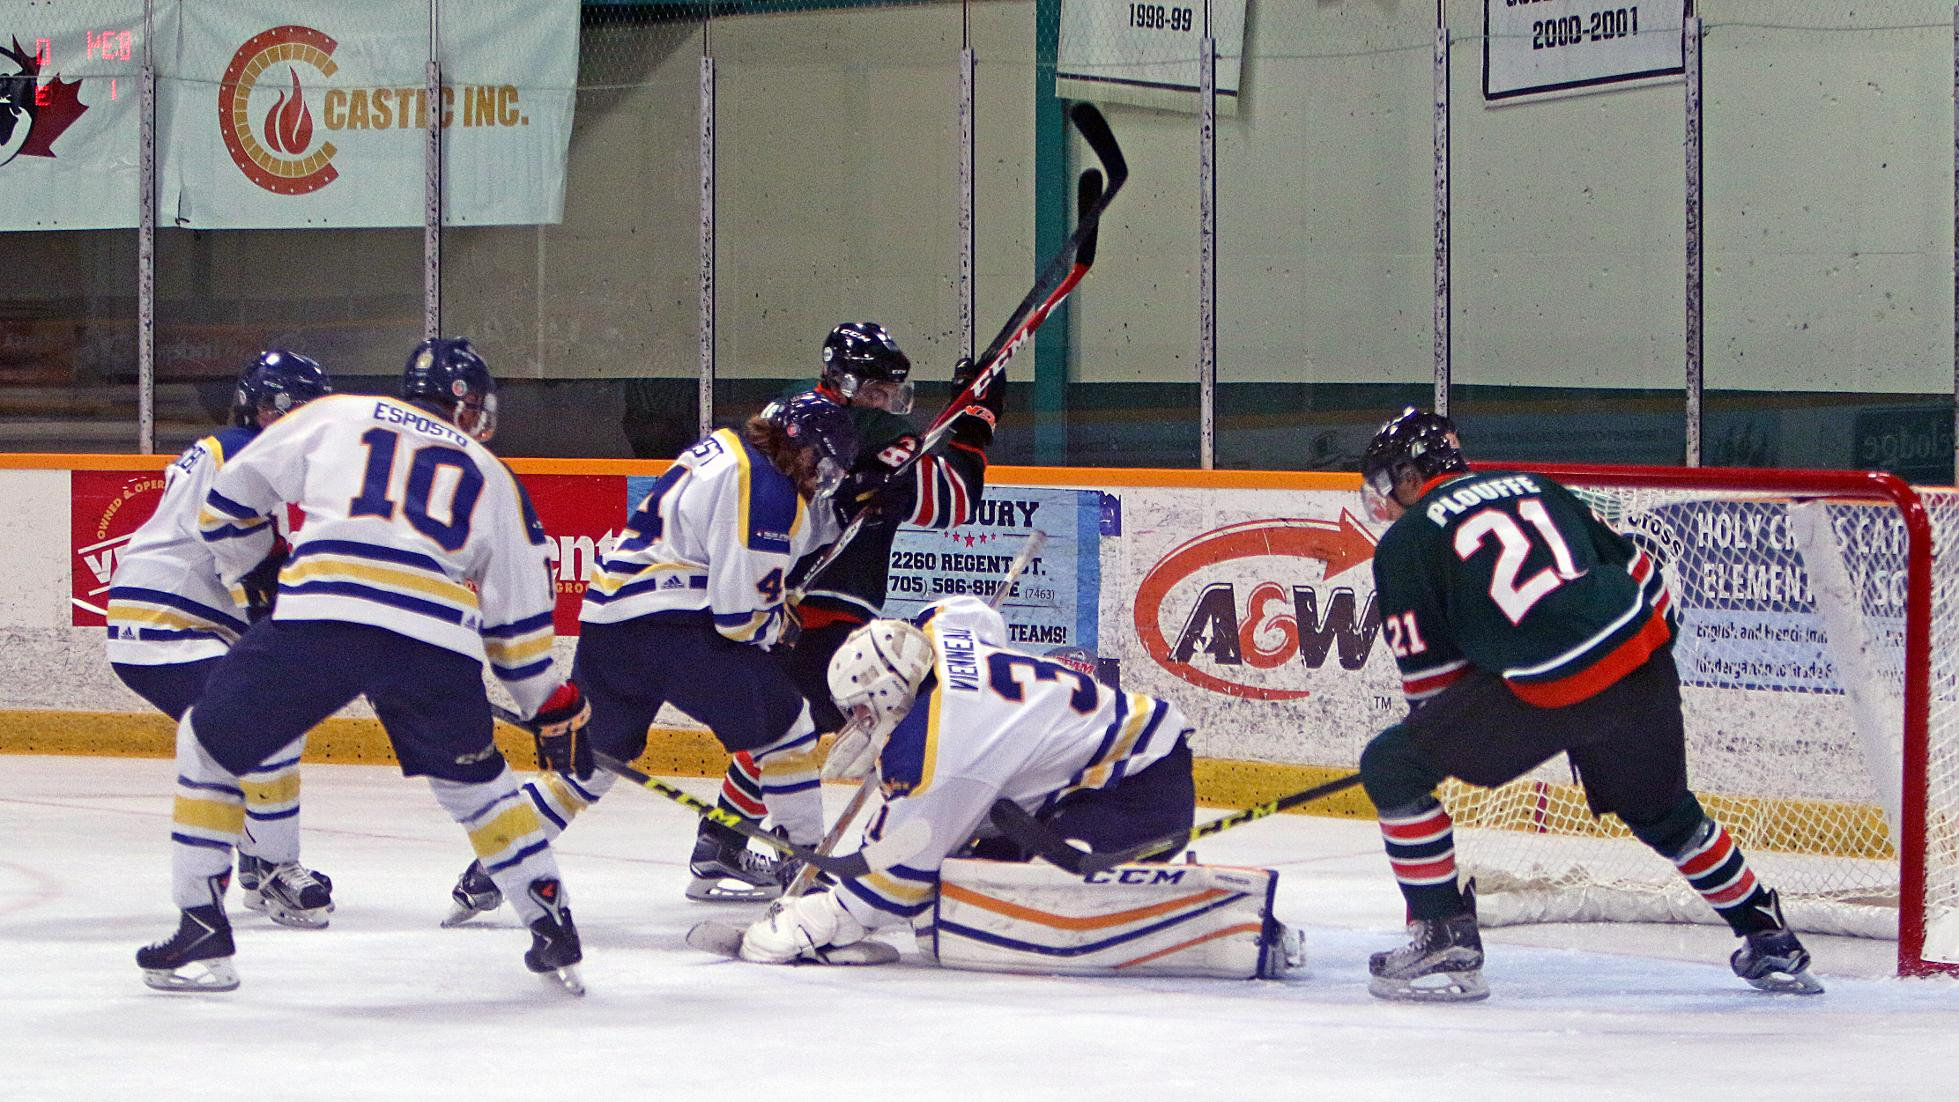 MHKY | Voyageurs Edge Ravens 3-1 in Great Team Victory